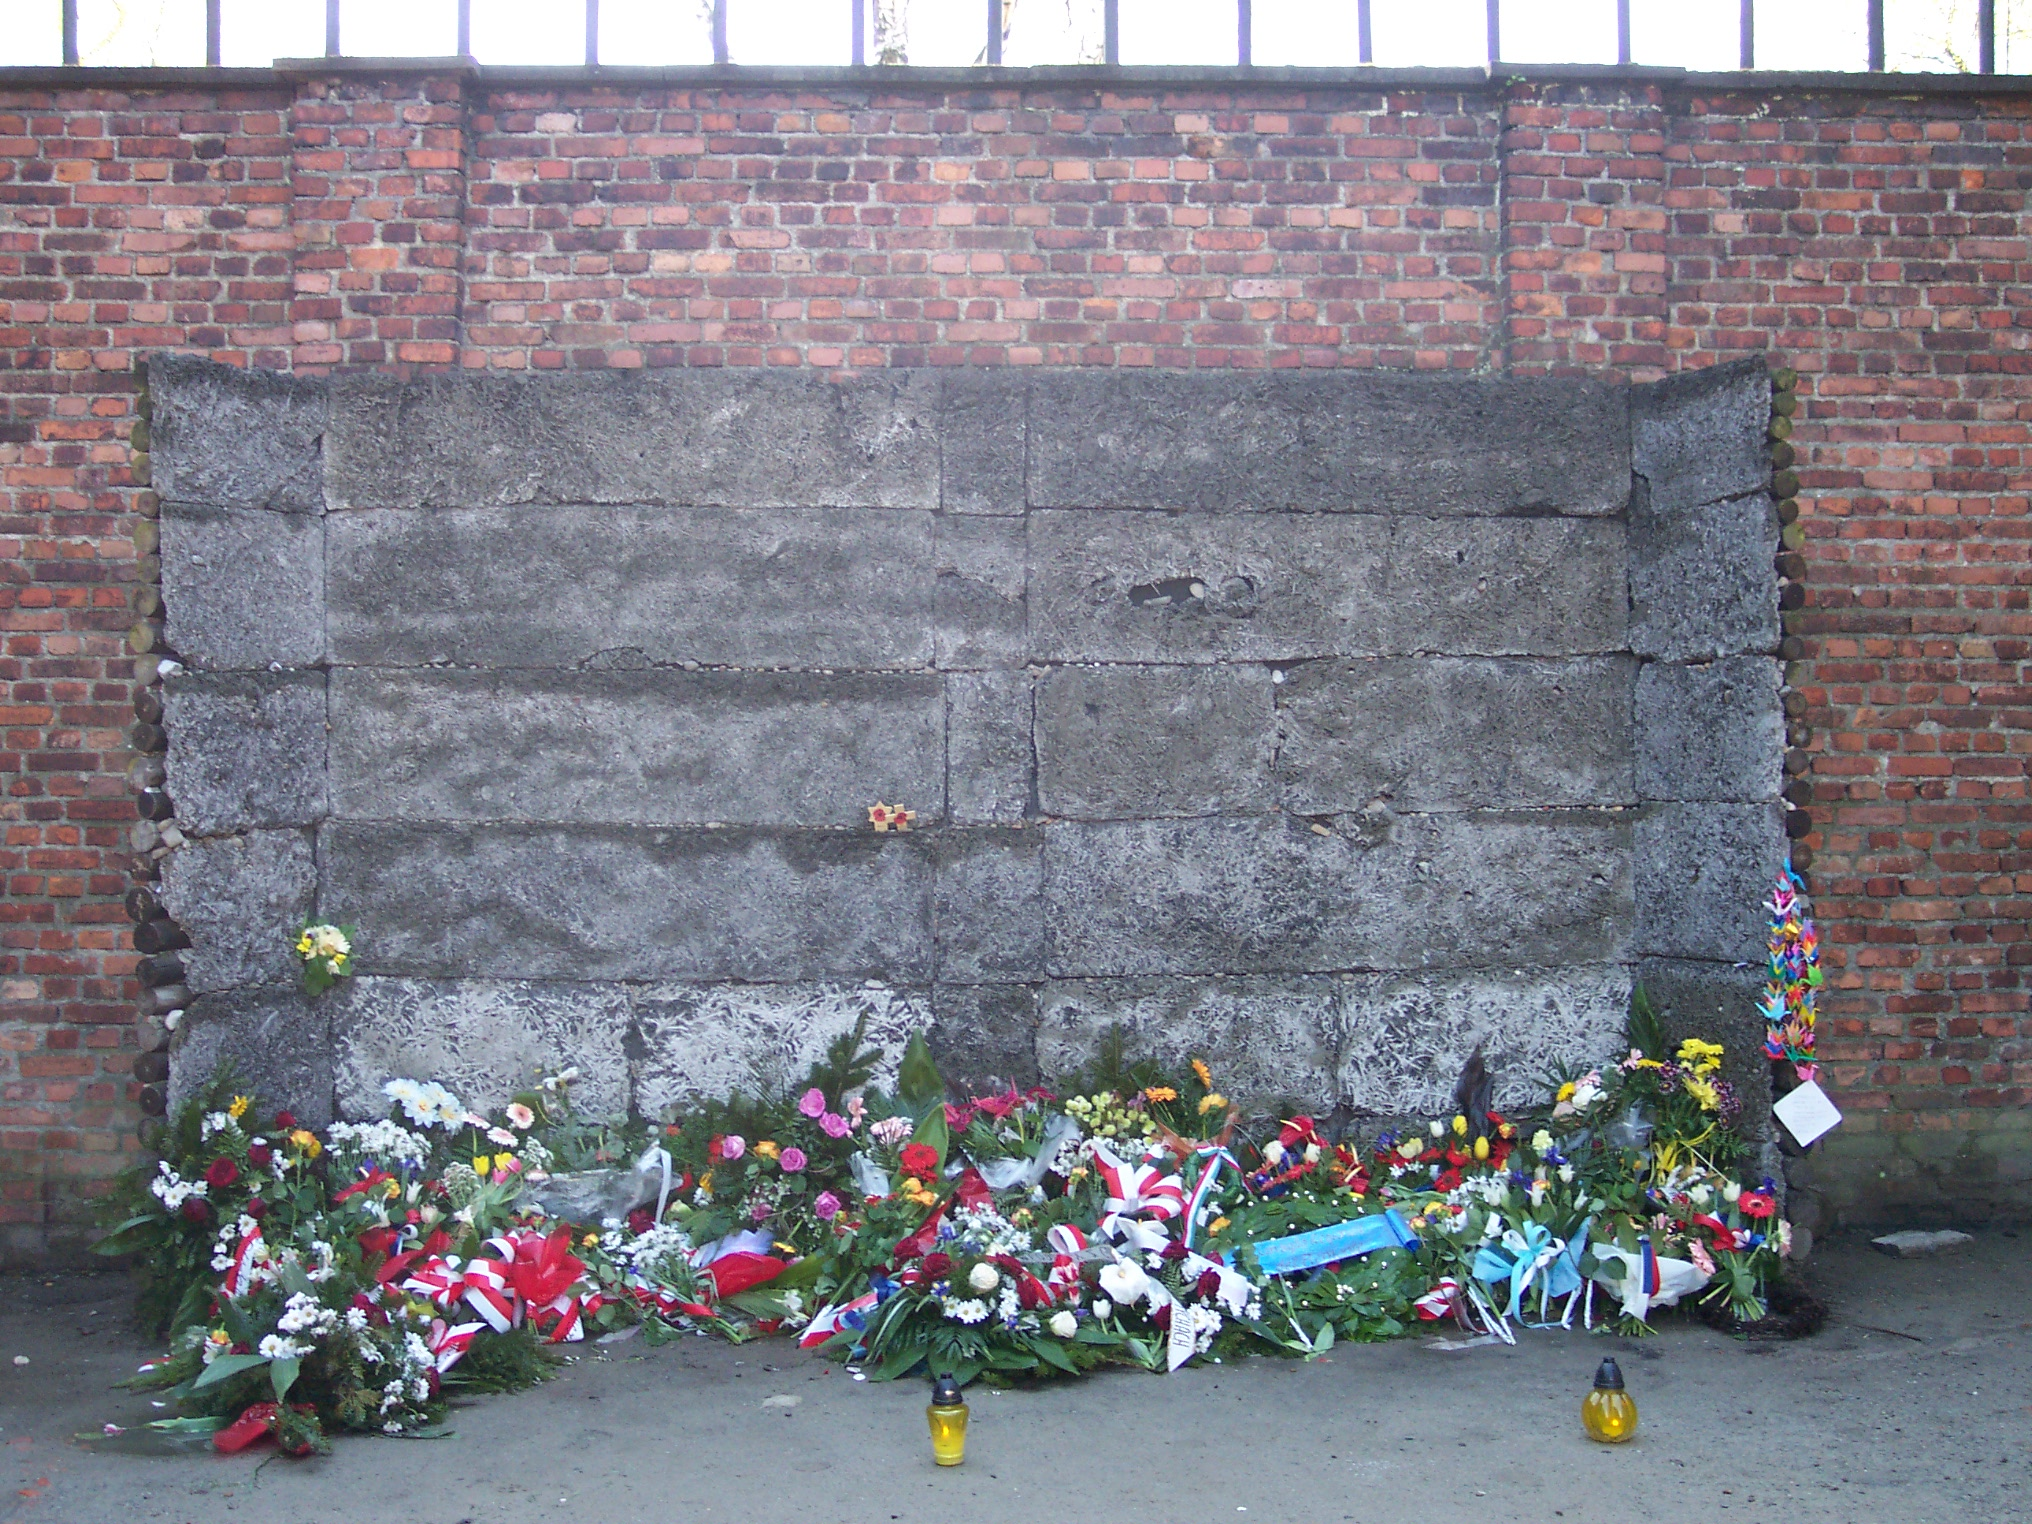 File:Wall of Death in Auschwitz I.jpg - Wikimedia Commons